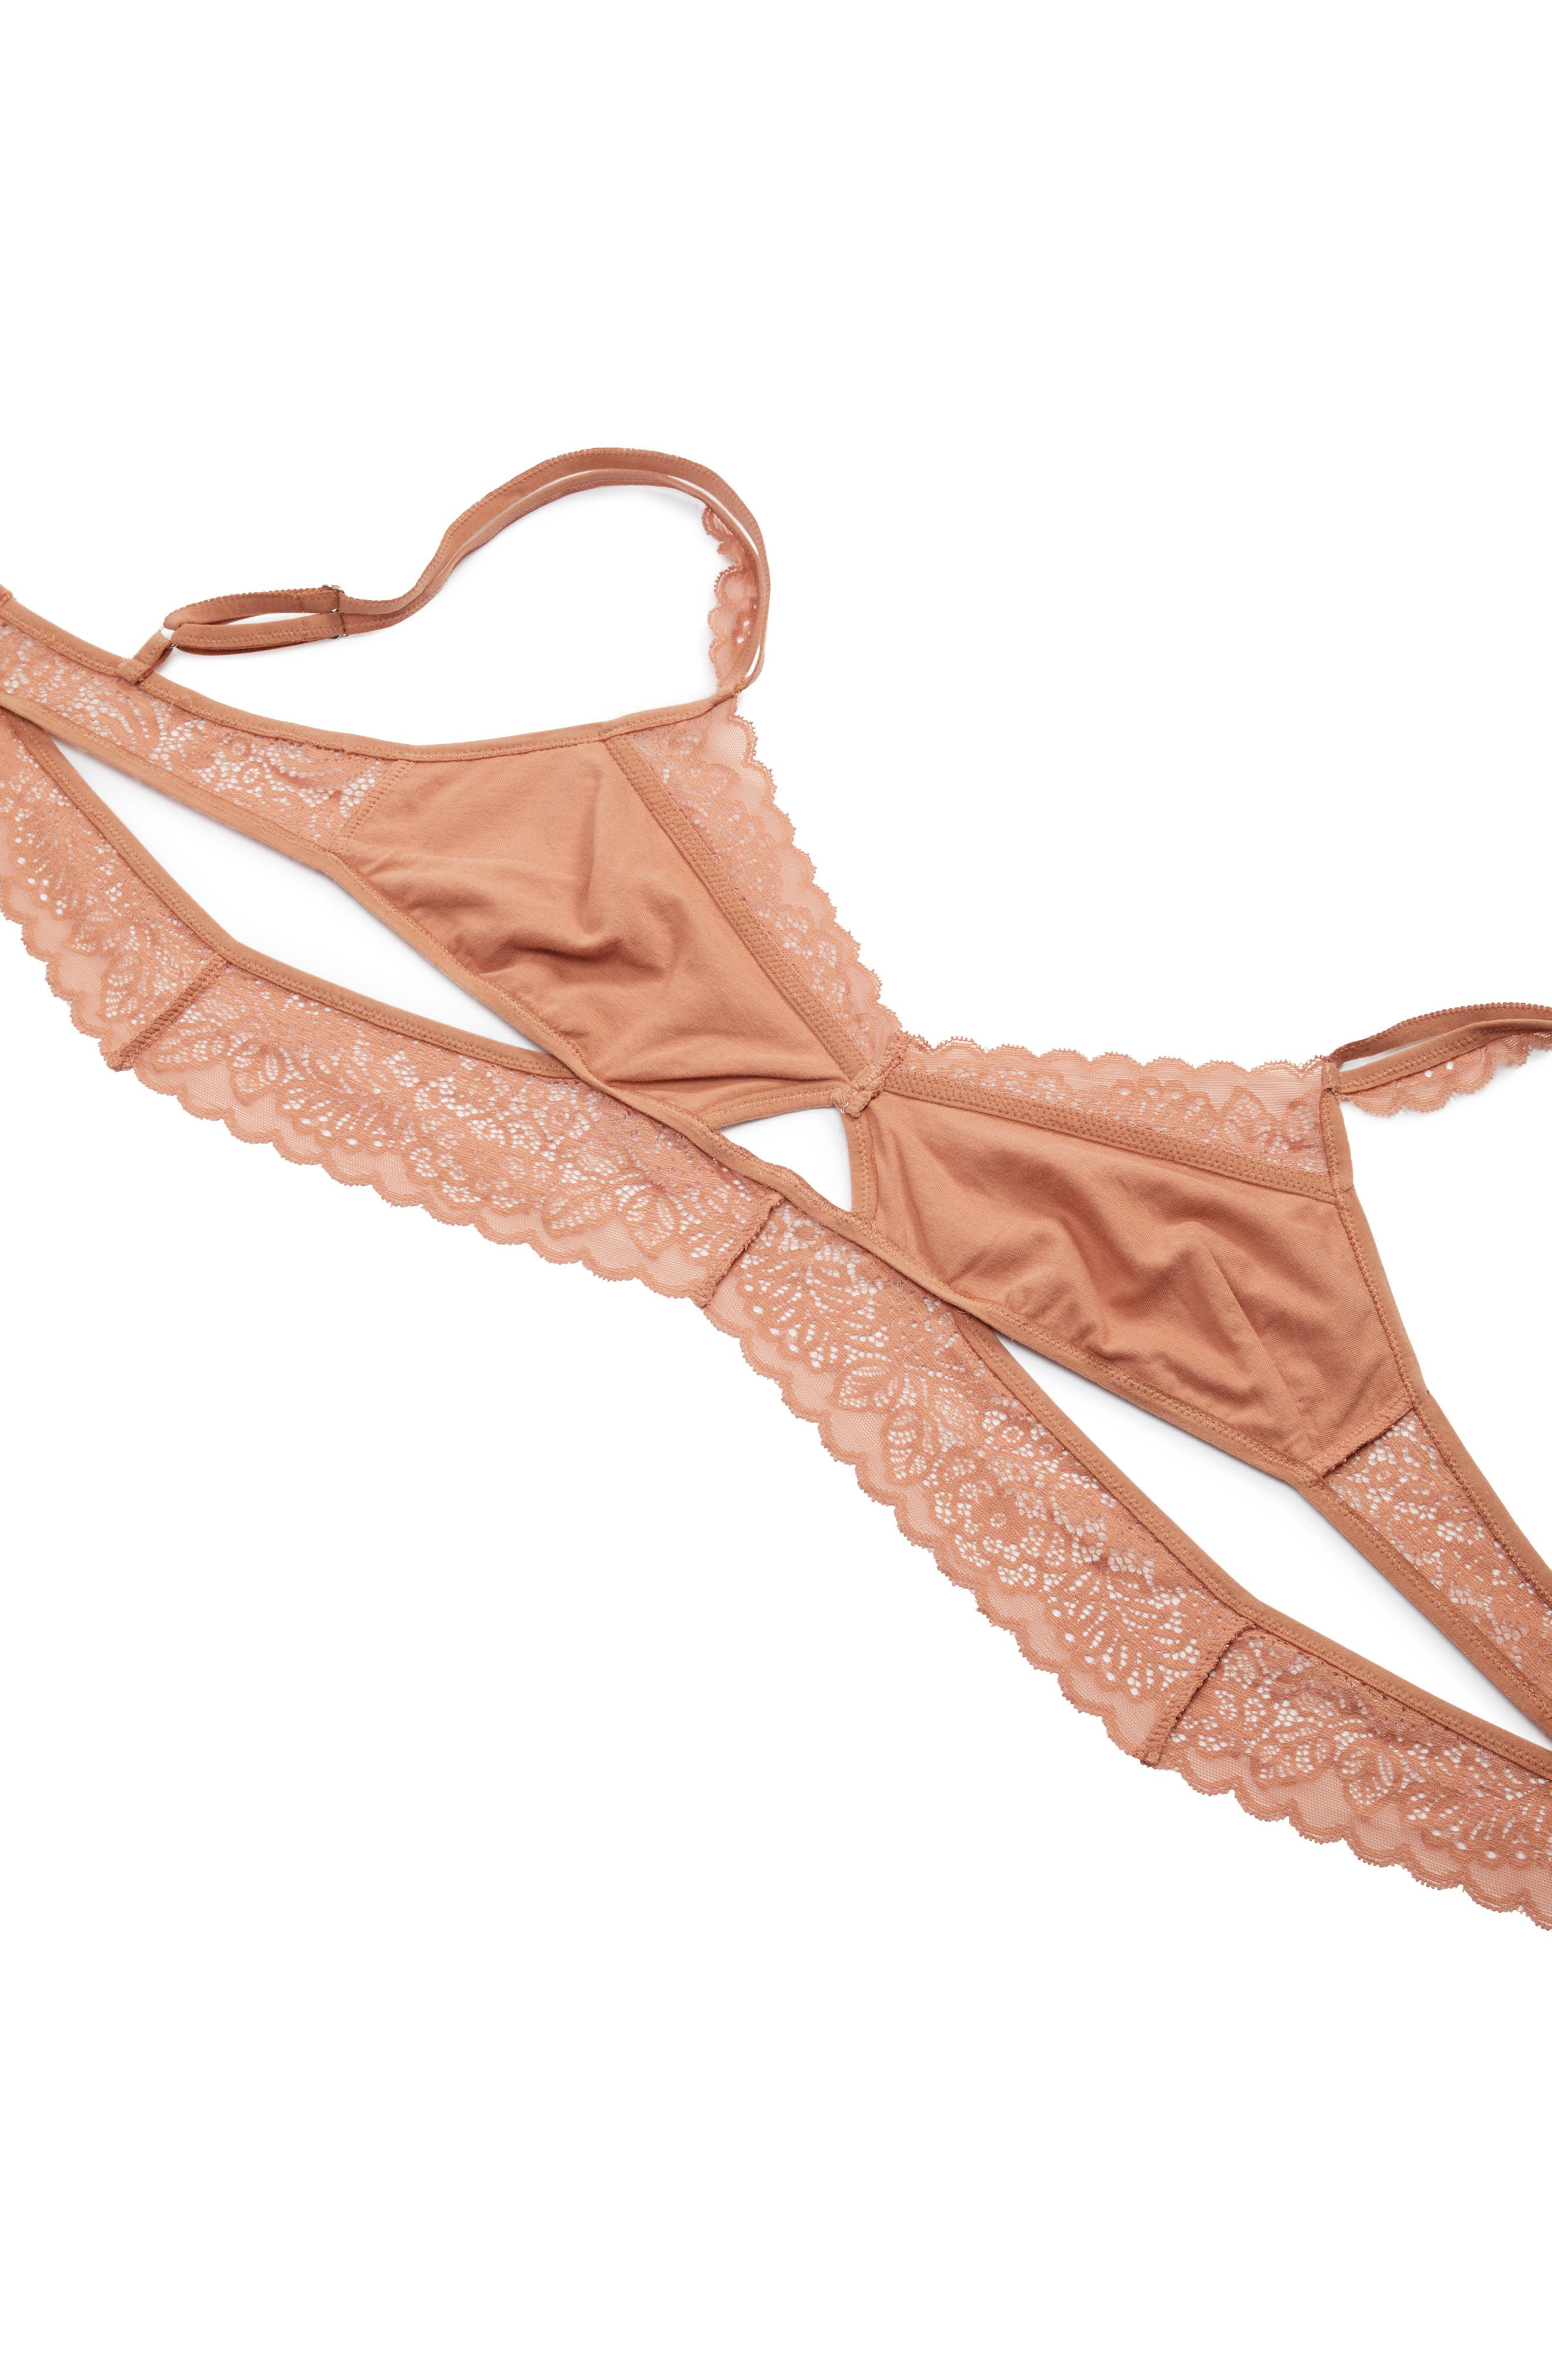 Thistle & Spire Marcy Keyhole Bralette,                             Alternate thumbnail 10, color,                             Terracotta